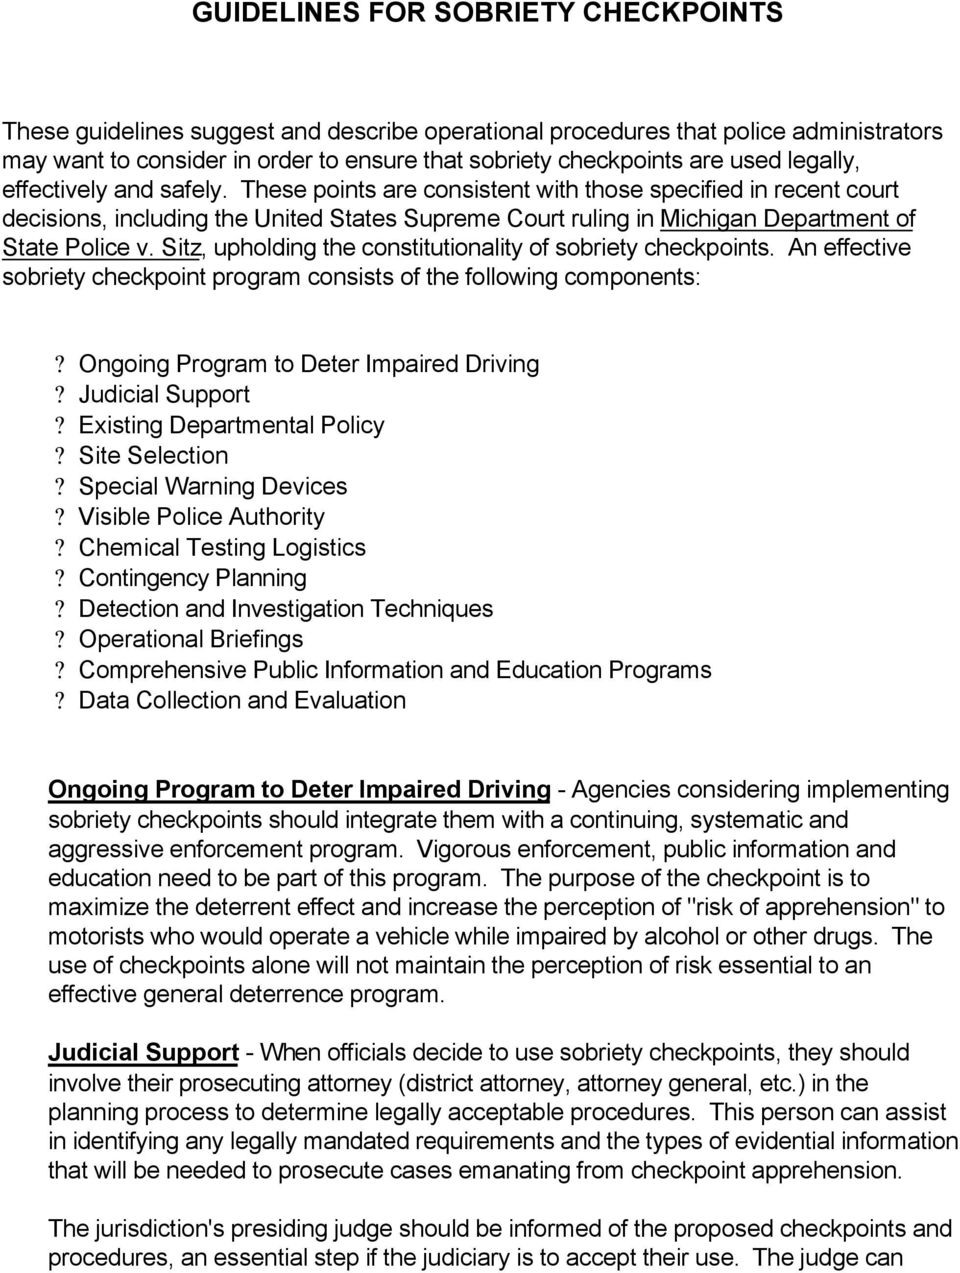 Sitz, upholding the constitutionality of sobriety checkpoints. An effective sobriety checkpoint program consists of the following components:? Ongoing Program to Deter Impaired Driving?